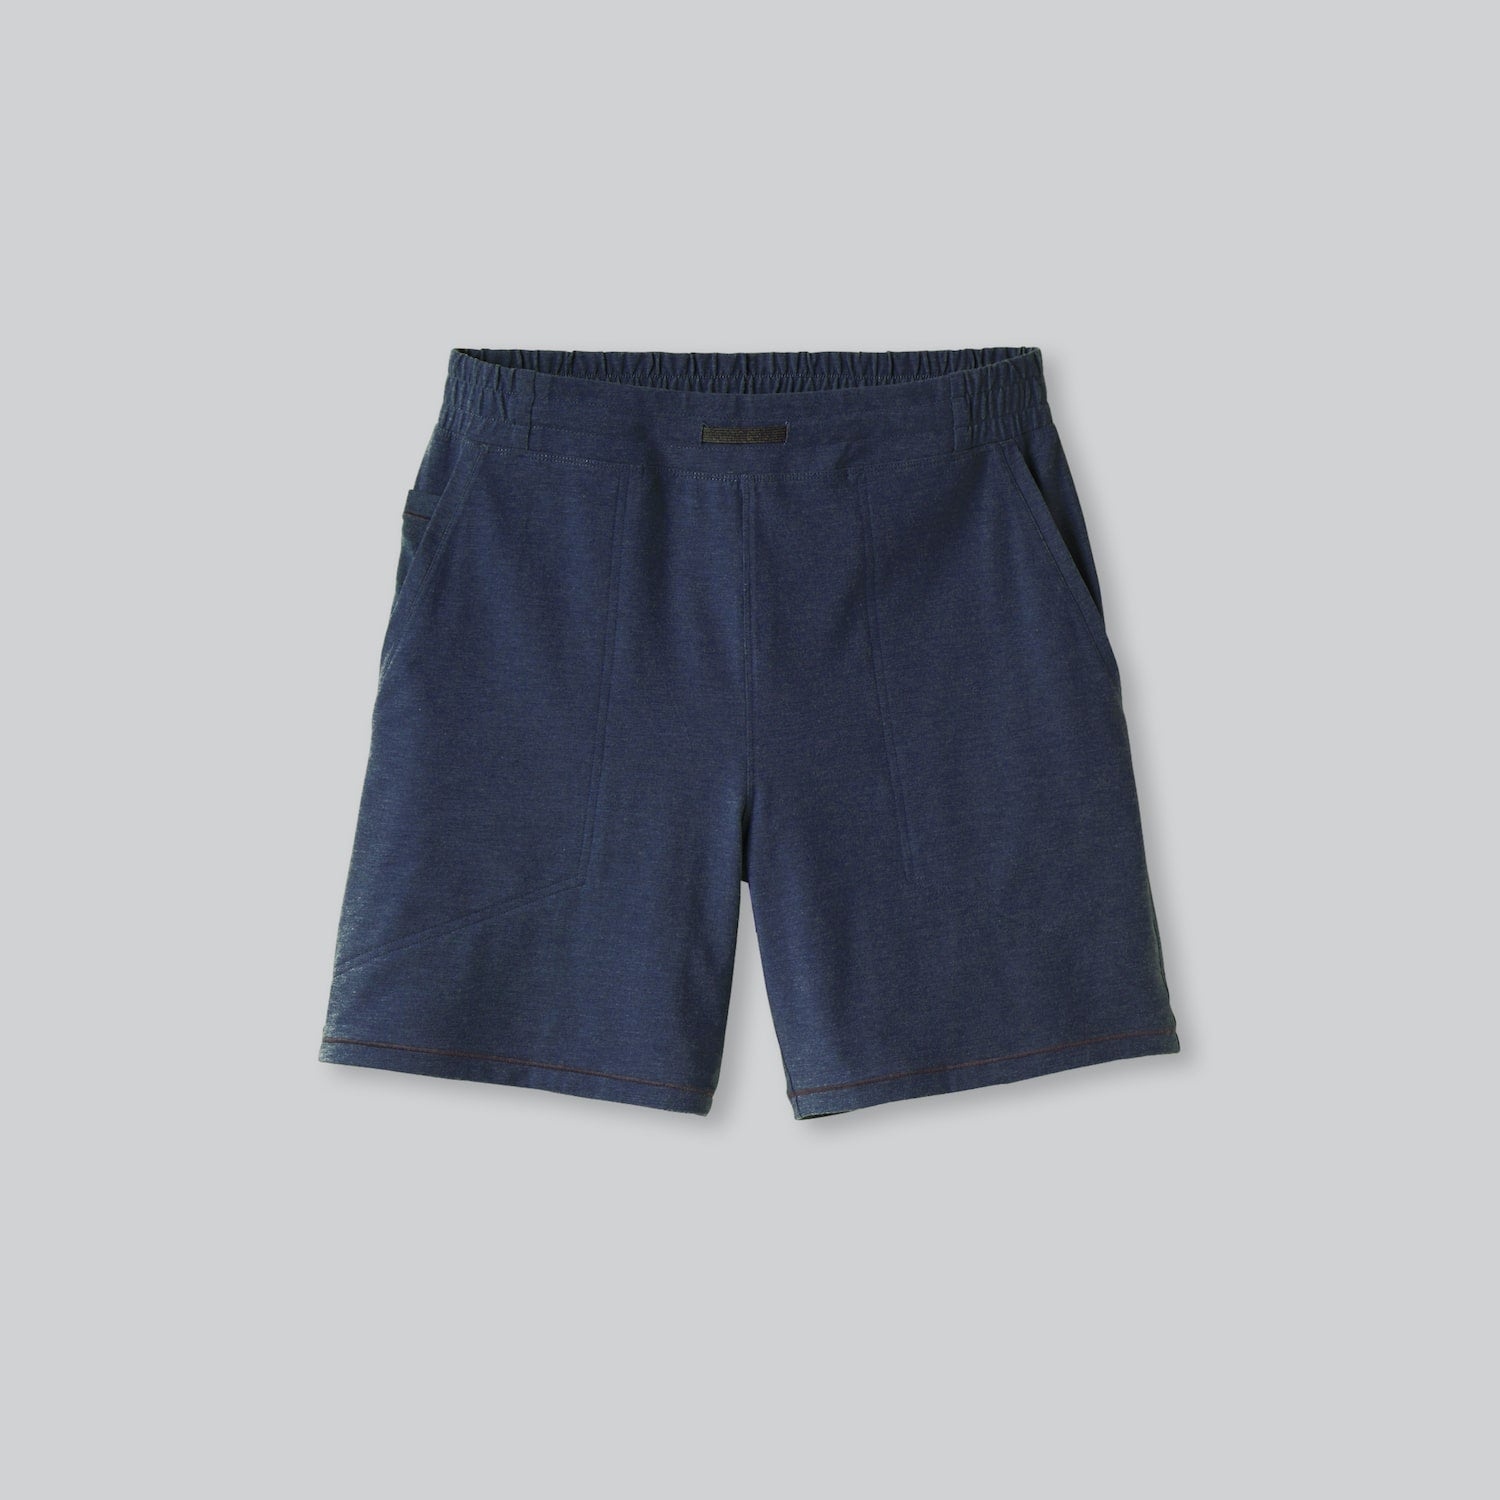 Lahgo Sleepwear Restore Short - #Deep Blue Heather